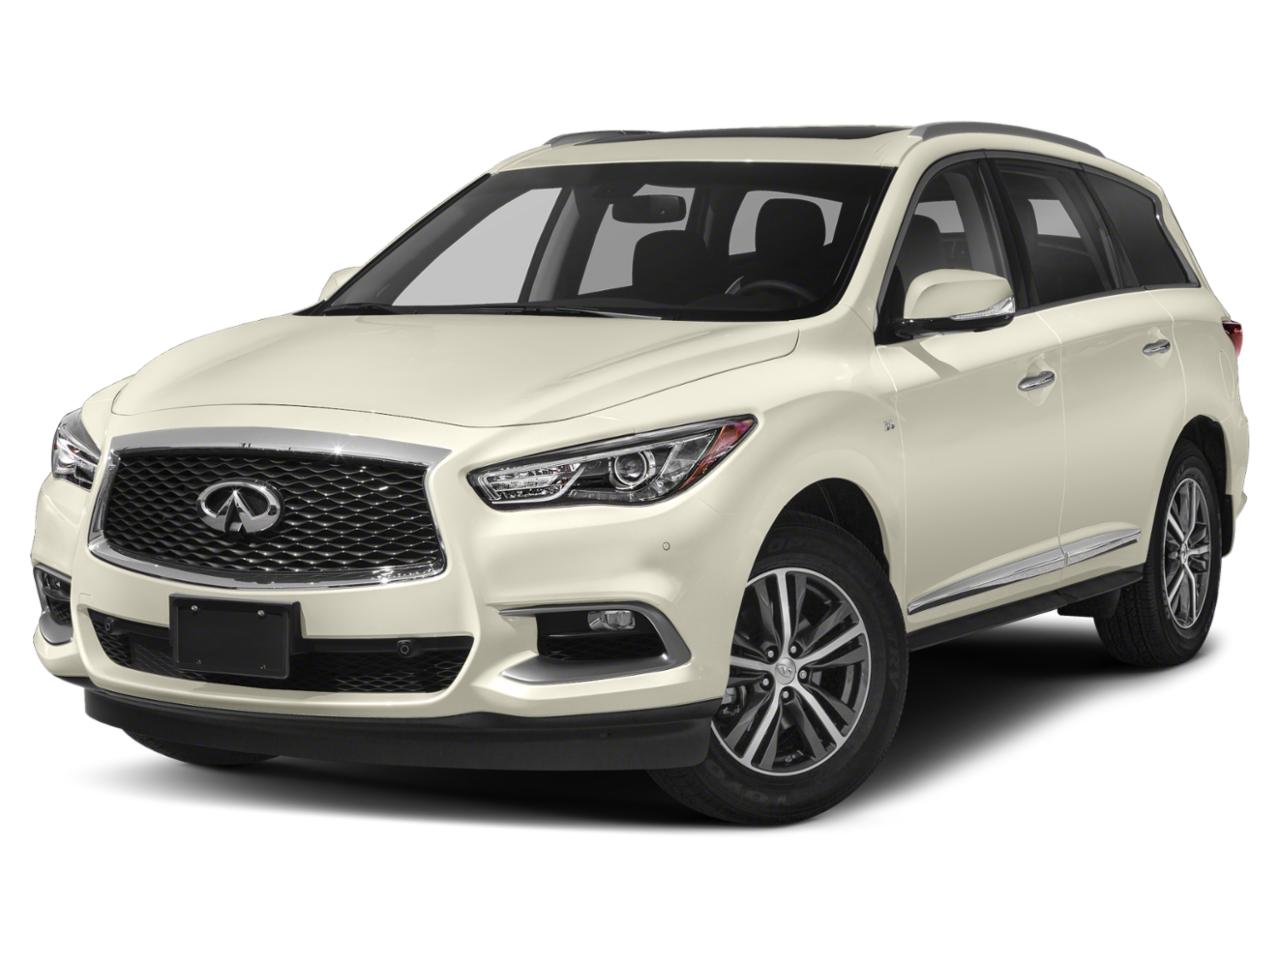 2020 INFINITI QX60 Vehicle Photo in Houston, TX 77090